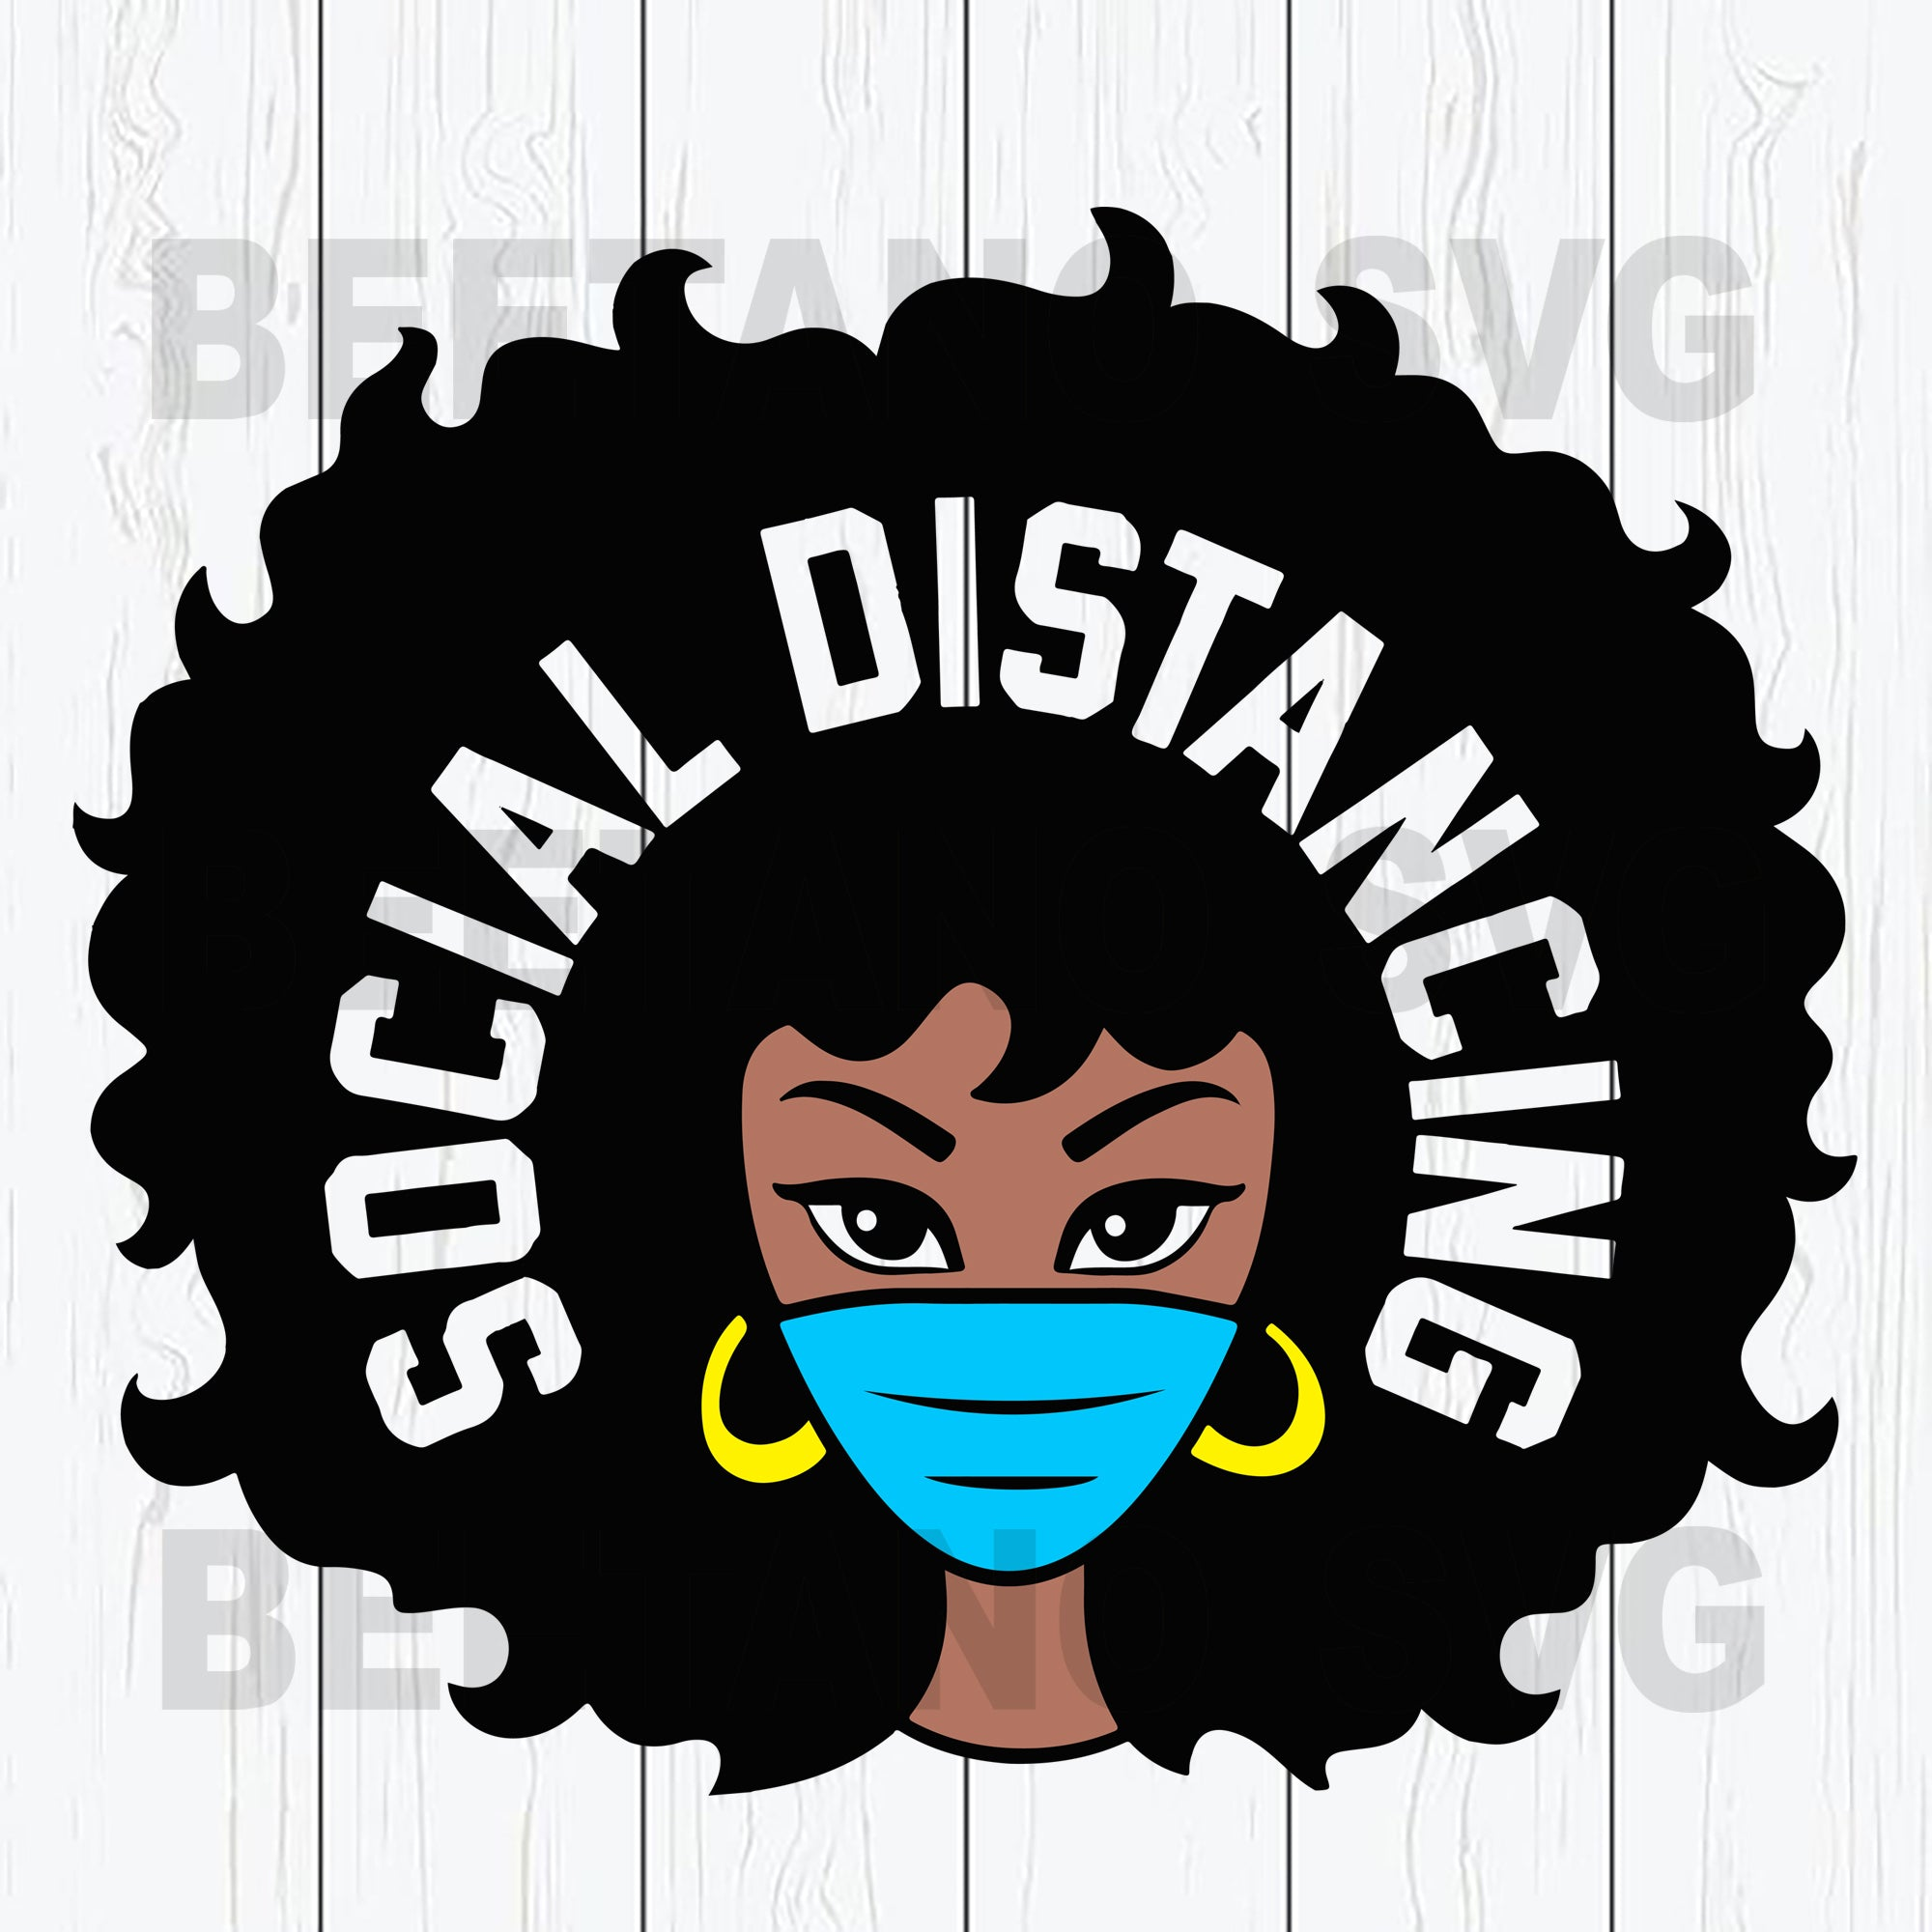 Afro Girl Social Distancing High Quality Svg Cut Files For Craft Download Beetanosvg Scalable Vector Graphics